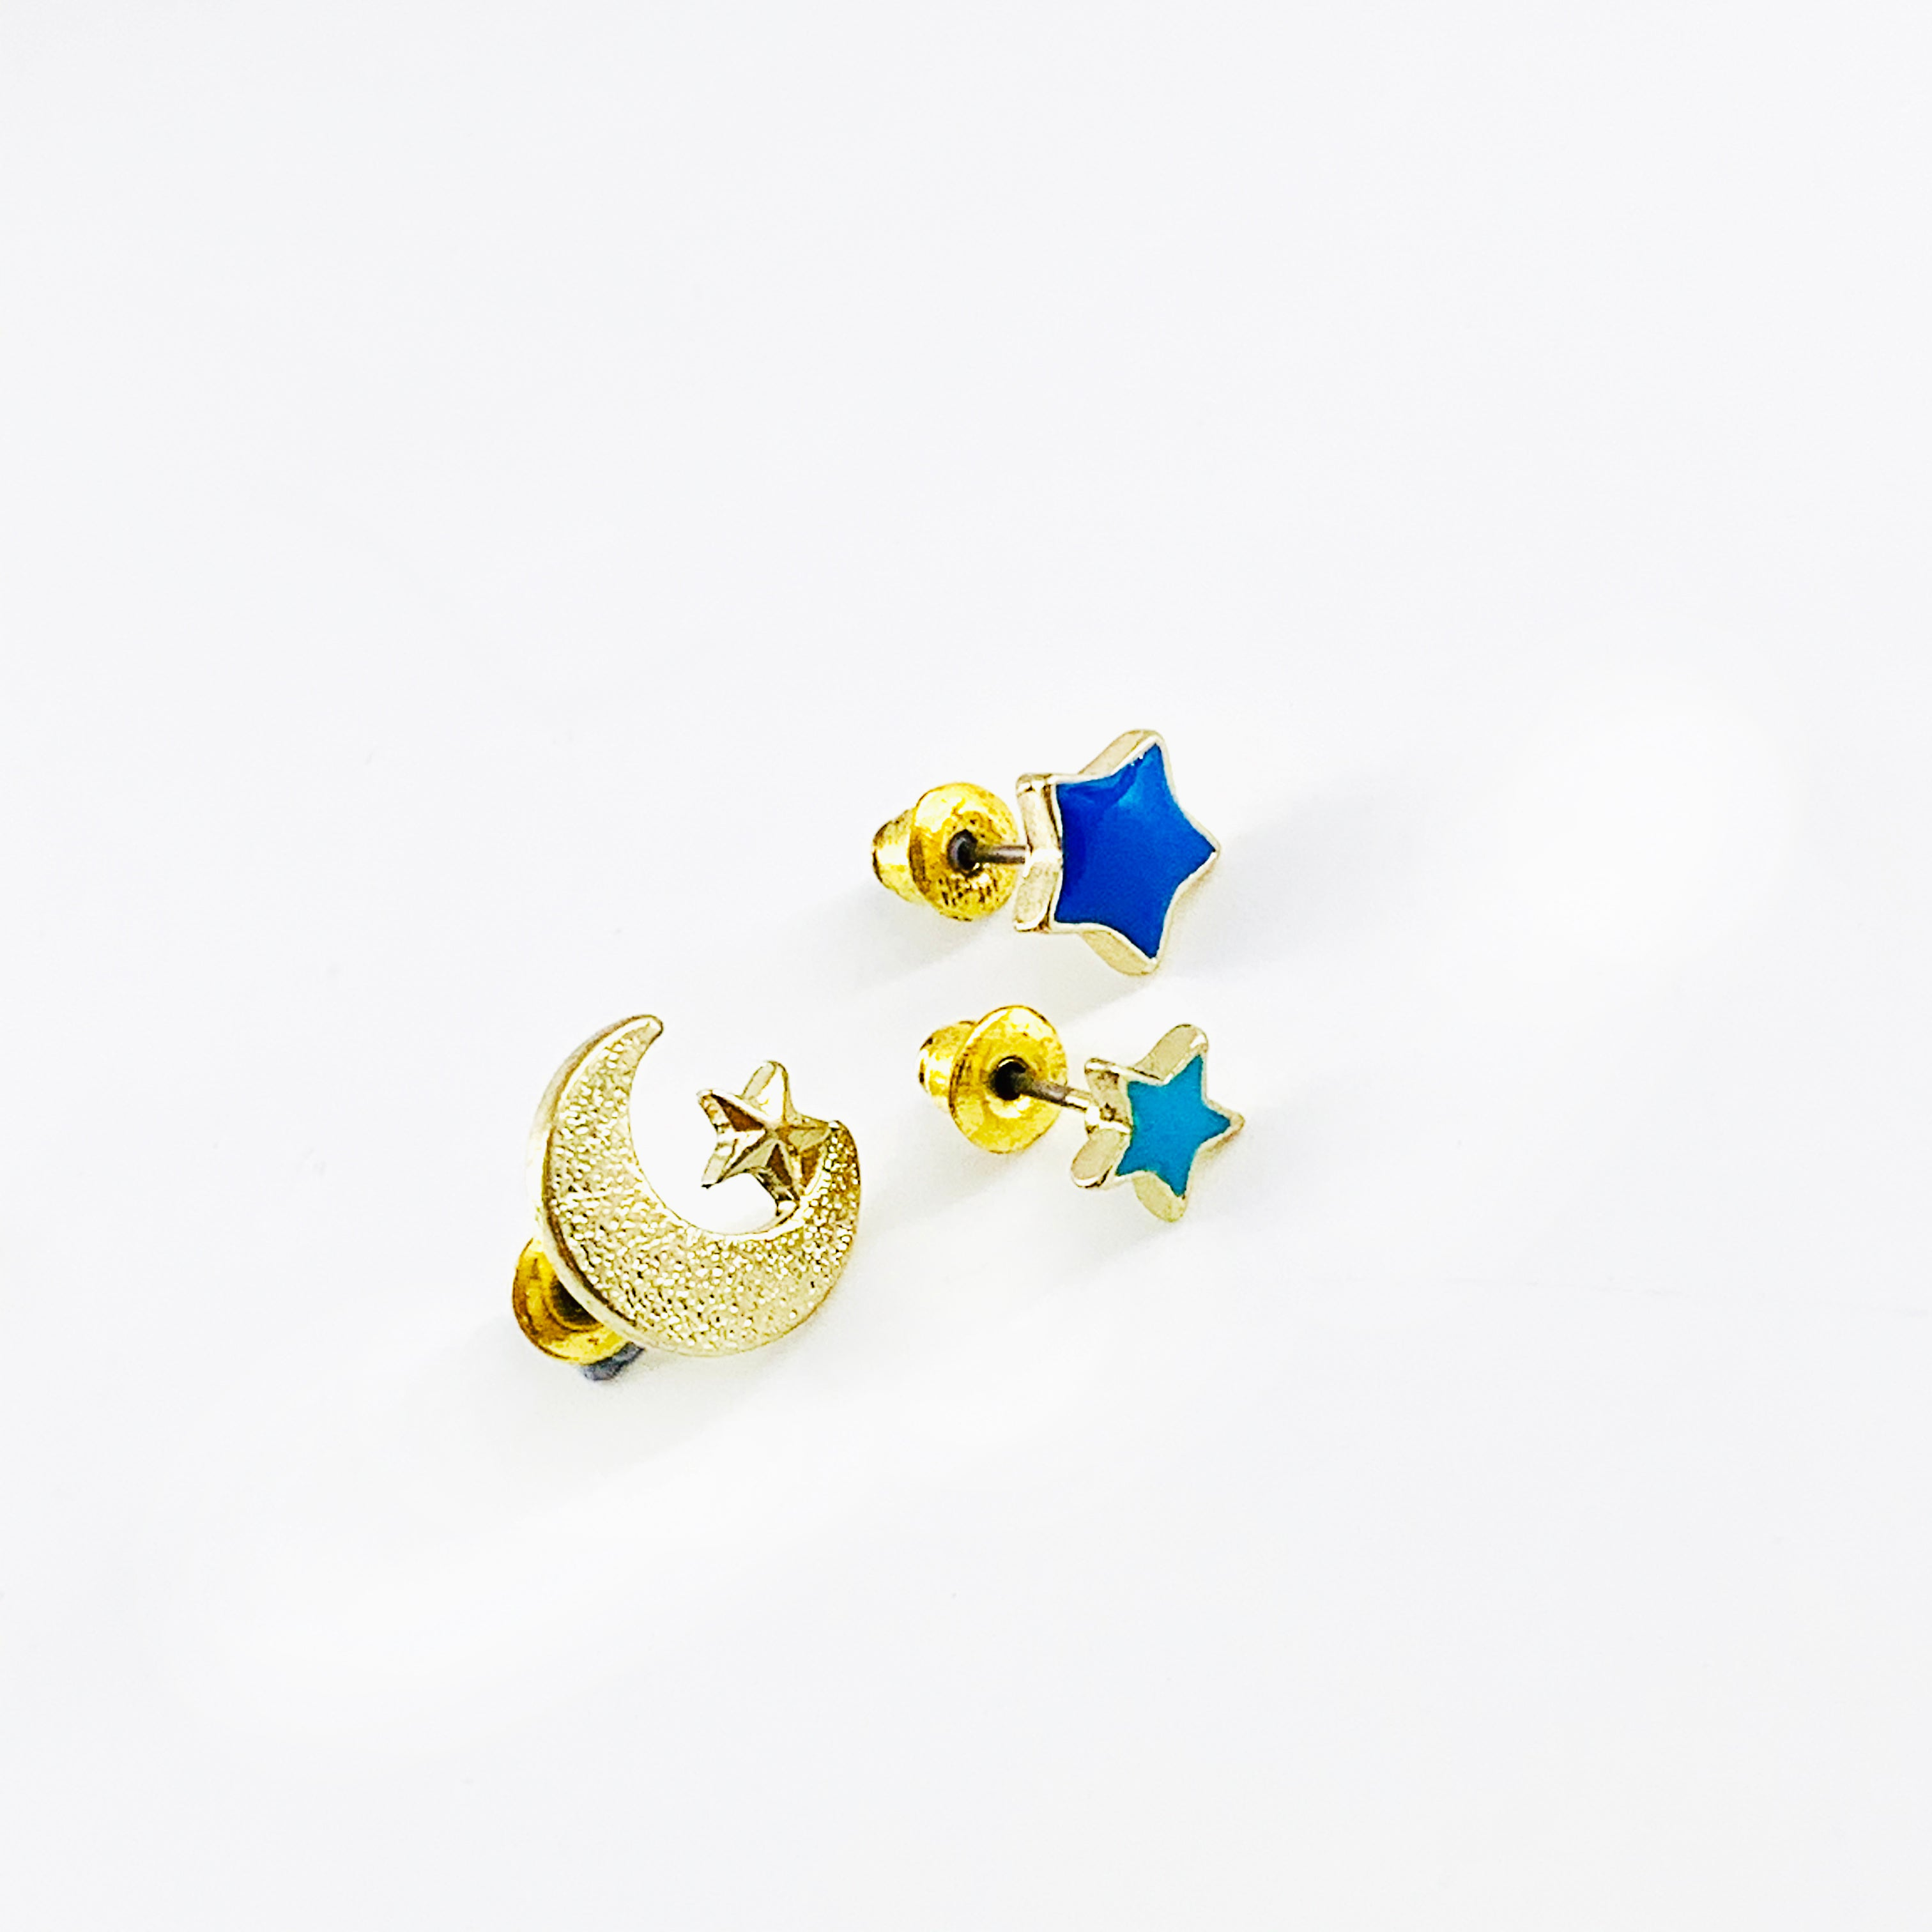 Crescent and star earrings in shades of blue